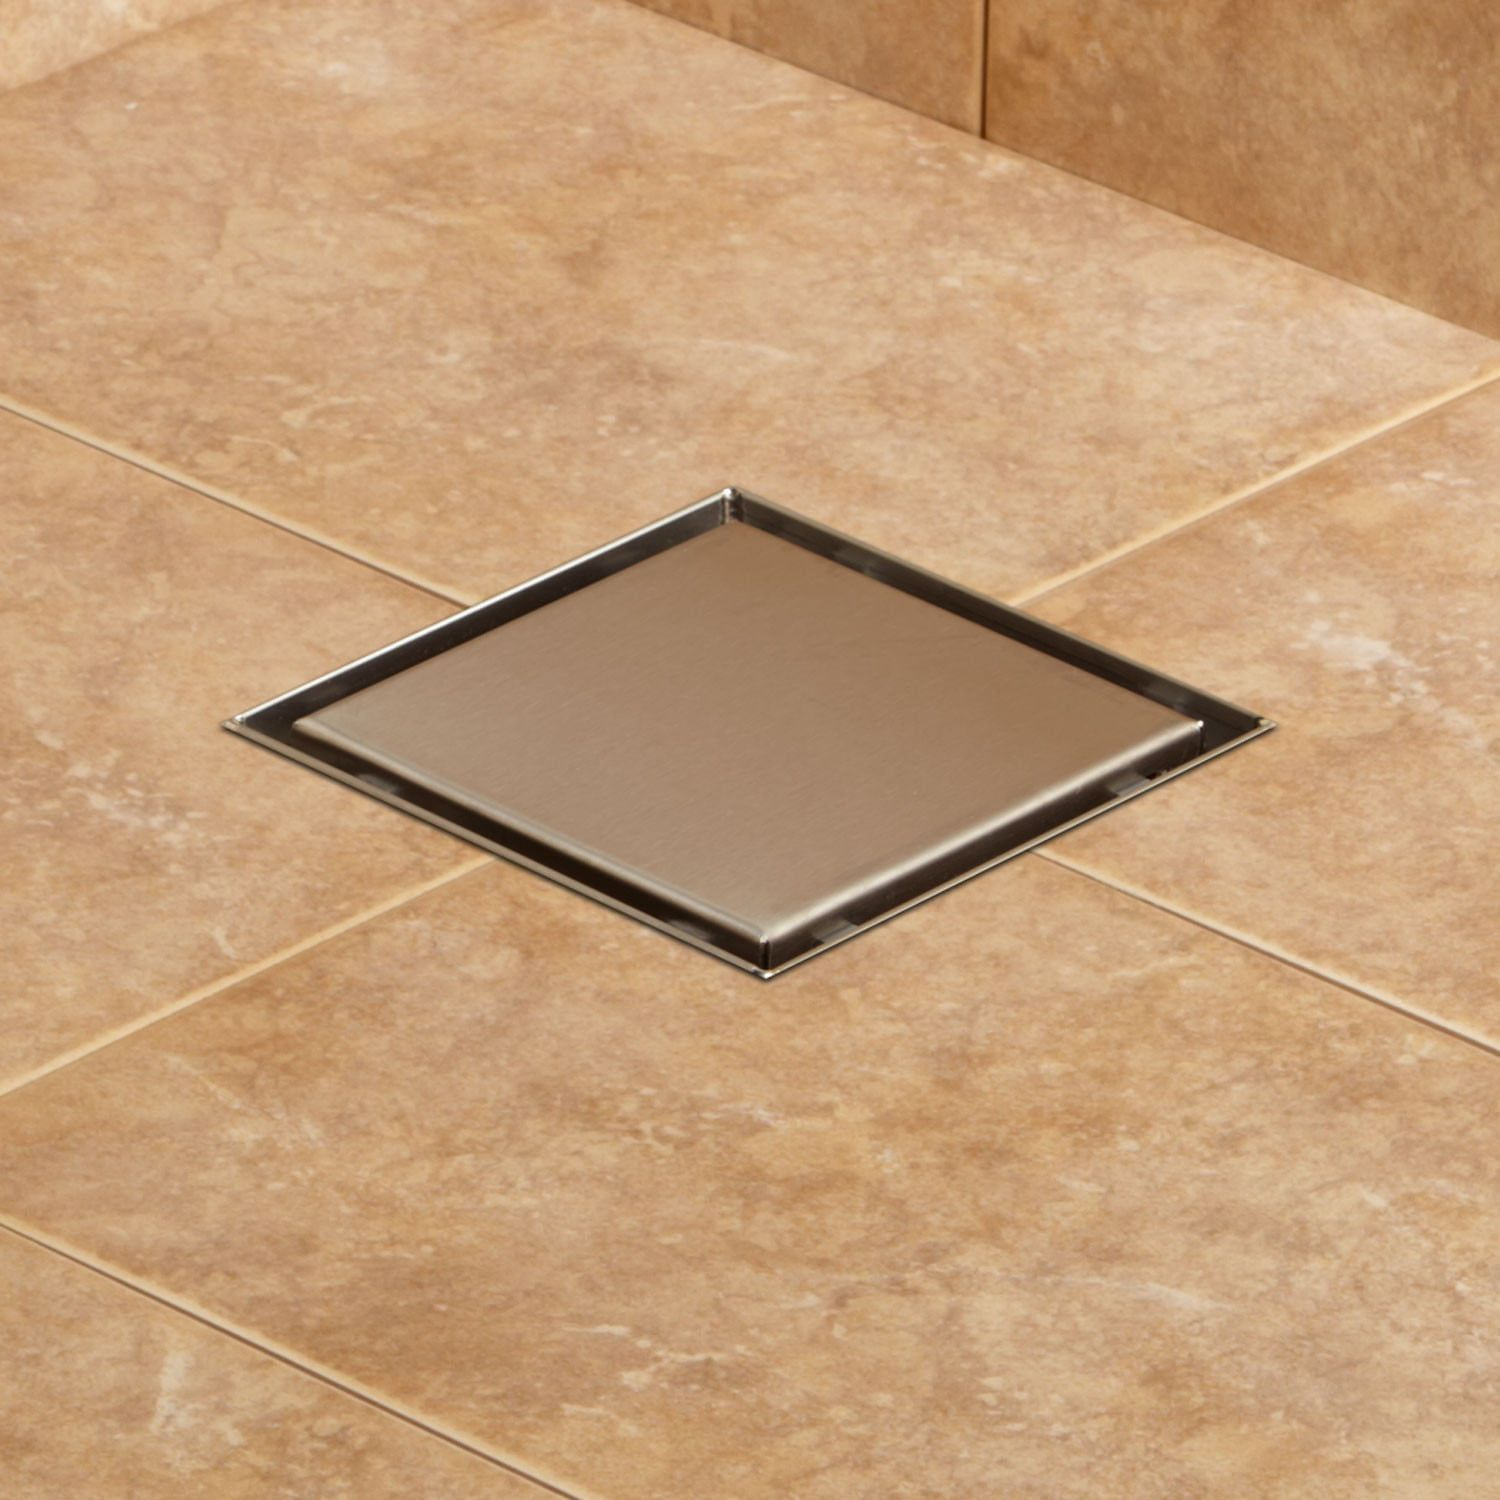 Ortiz Square Shower Drain Shower And Tub Drains Bathroom Shower Drain Shower Renovation Shower Floor